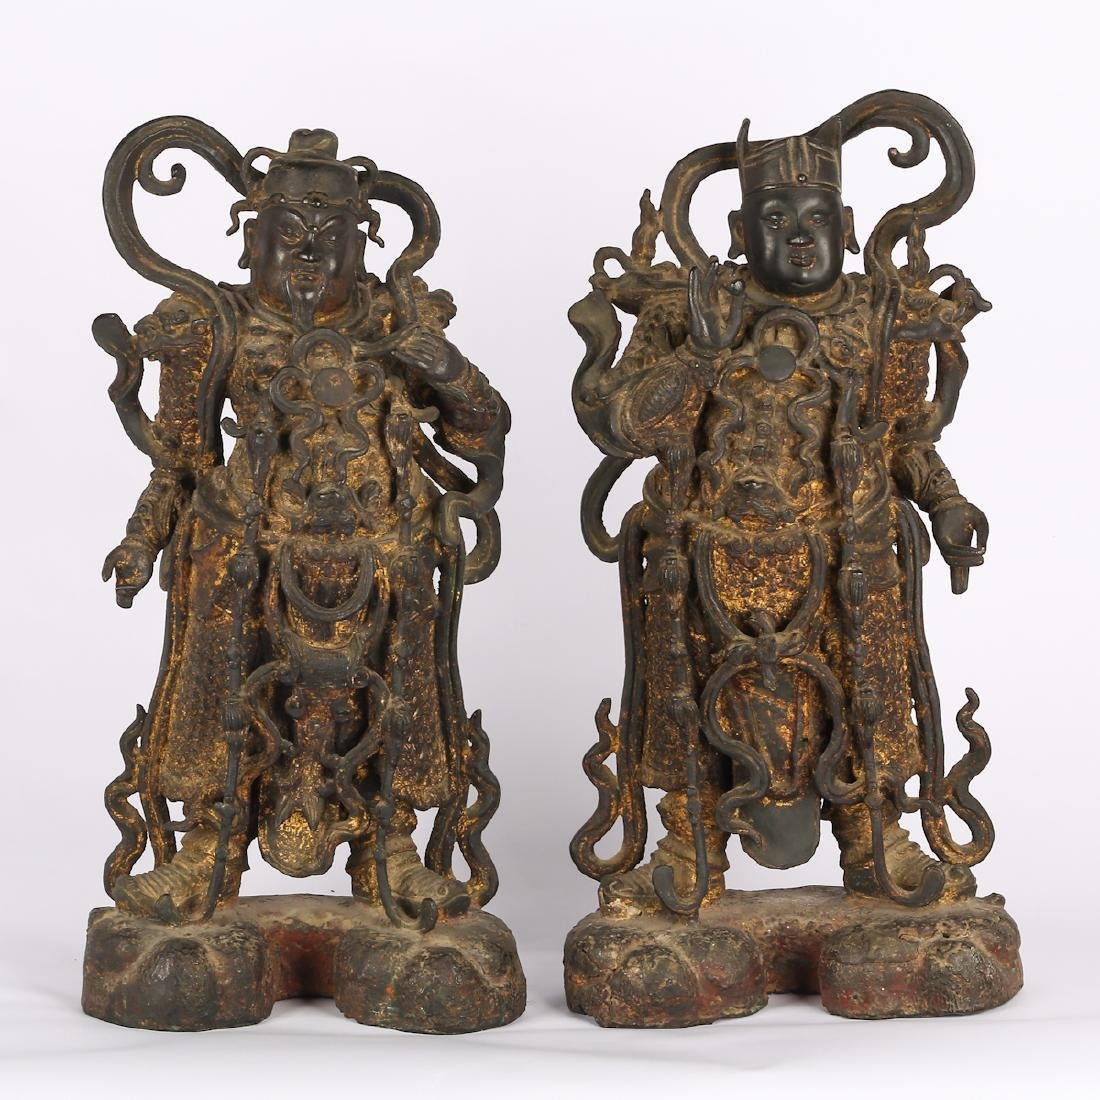 CHINESE TWO MING DYNASTY BRONZE FIGURE OF GUARDIAN